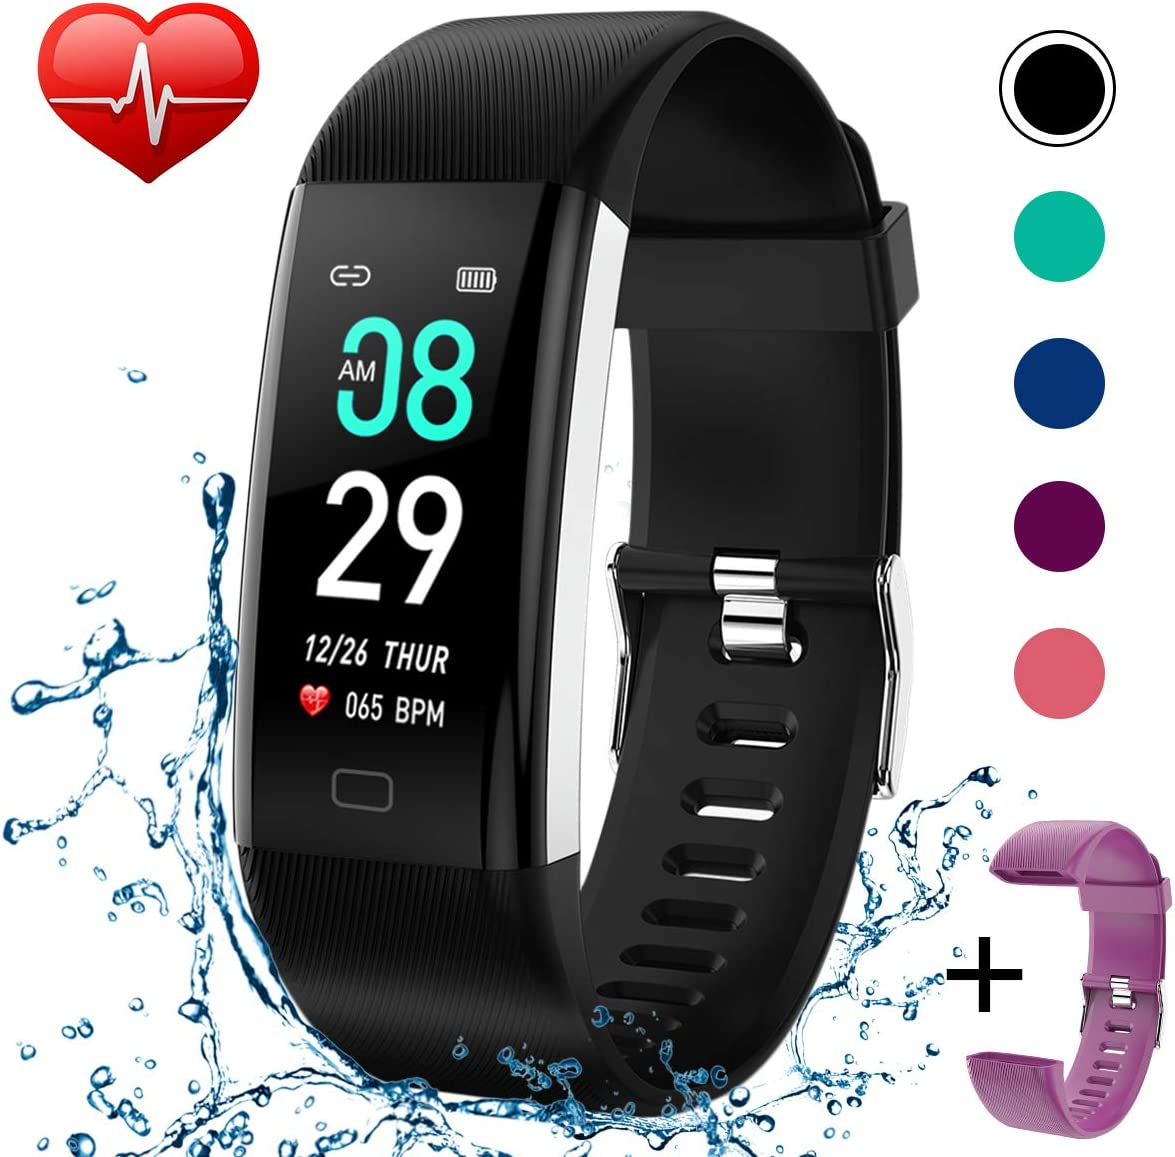 Beaulyn Fitness Tracker Watch Heart Rate Monitor-1.14 Color Screen IP67 Waterproof Activity Tracker,Sleep Monitor,Pedometer Smart Wrist Band for Women Men, Android iOS